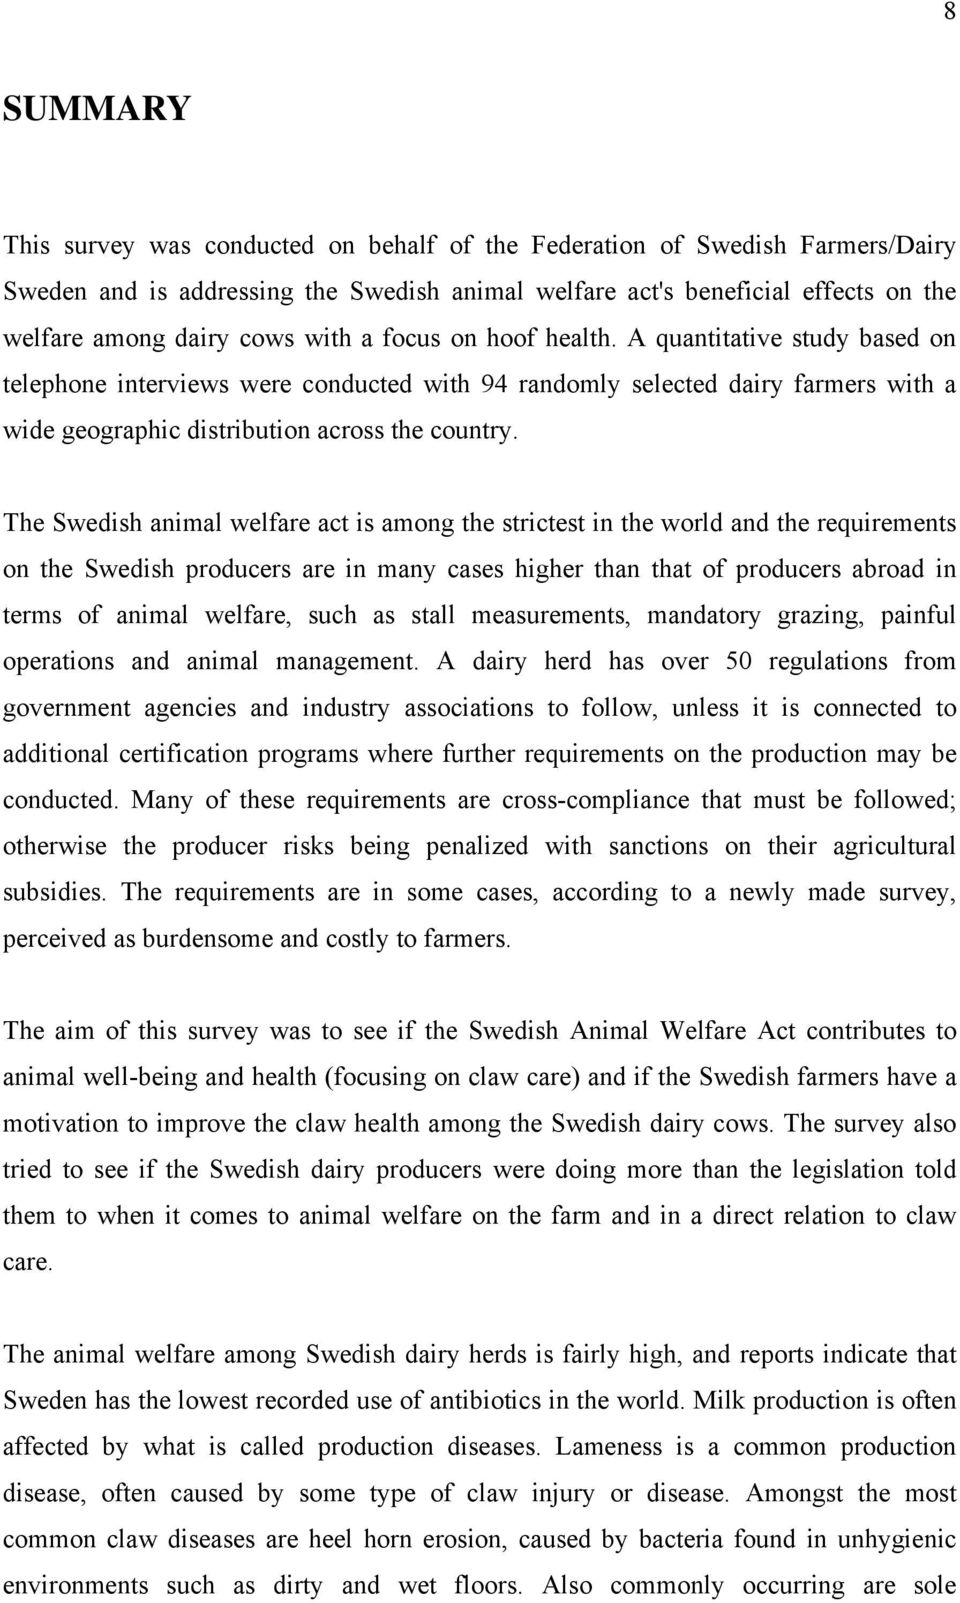 The Swedish animal welfare act is among the strictest in the world and the requirements on the Swedish producers are in many cases higher than that of producers abroad in terms of animal welfare,